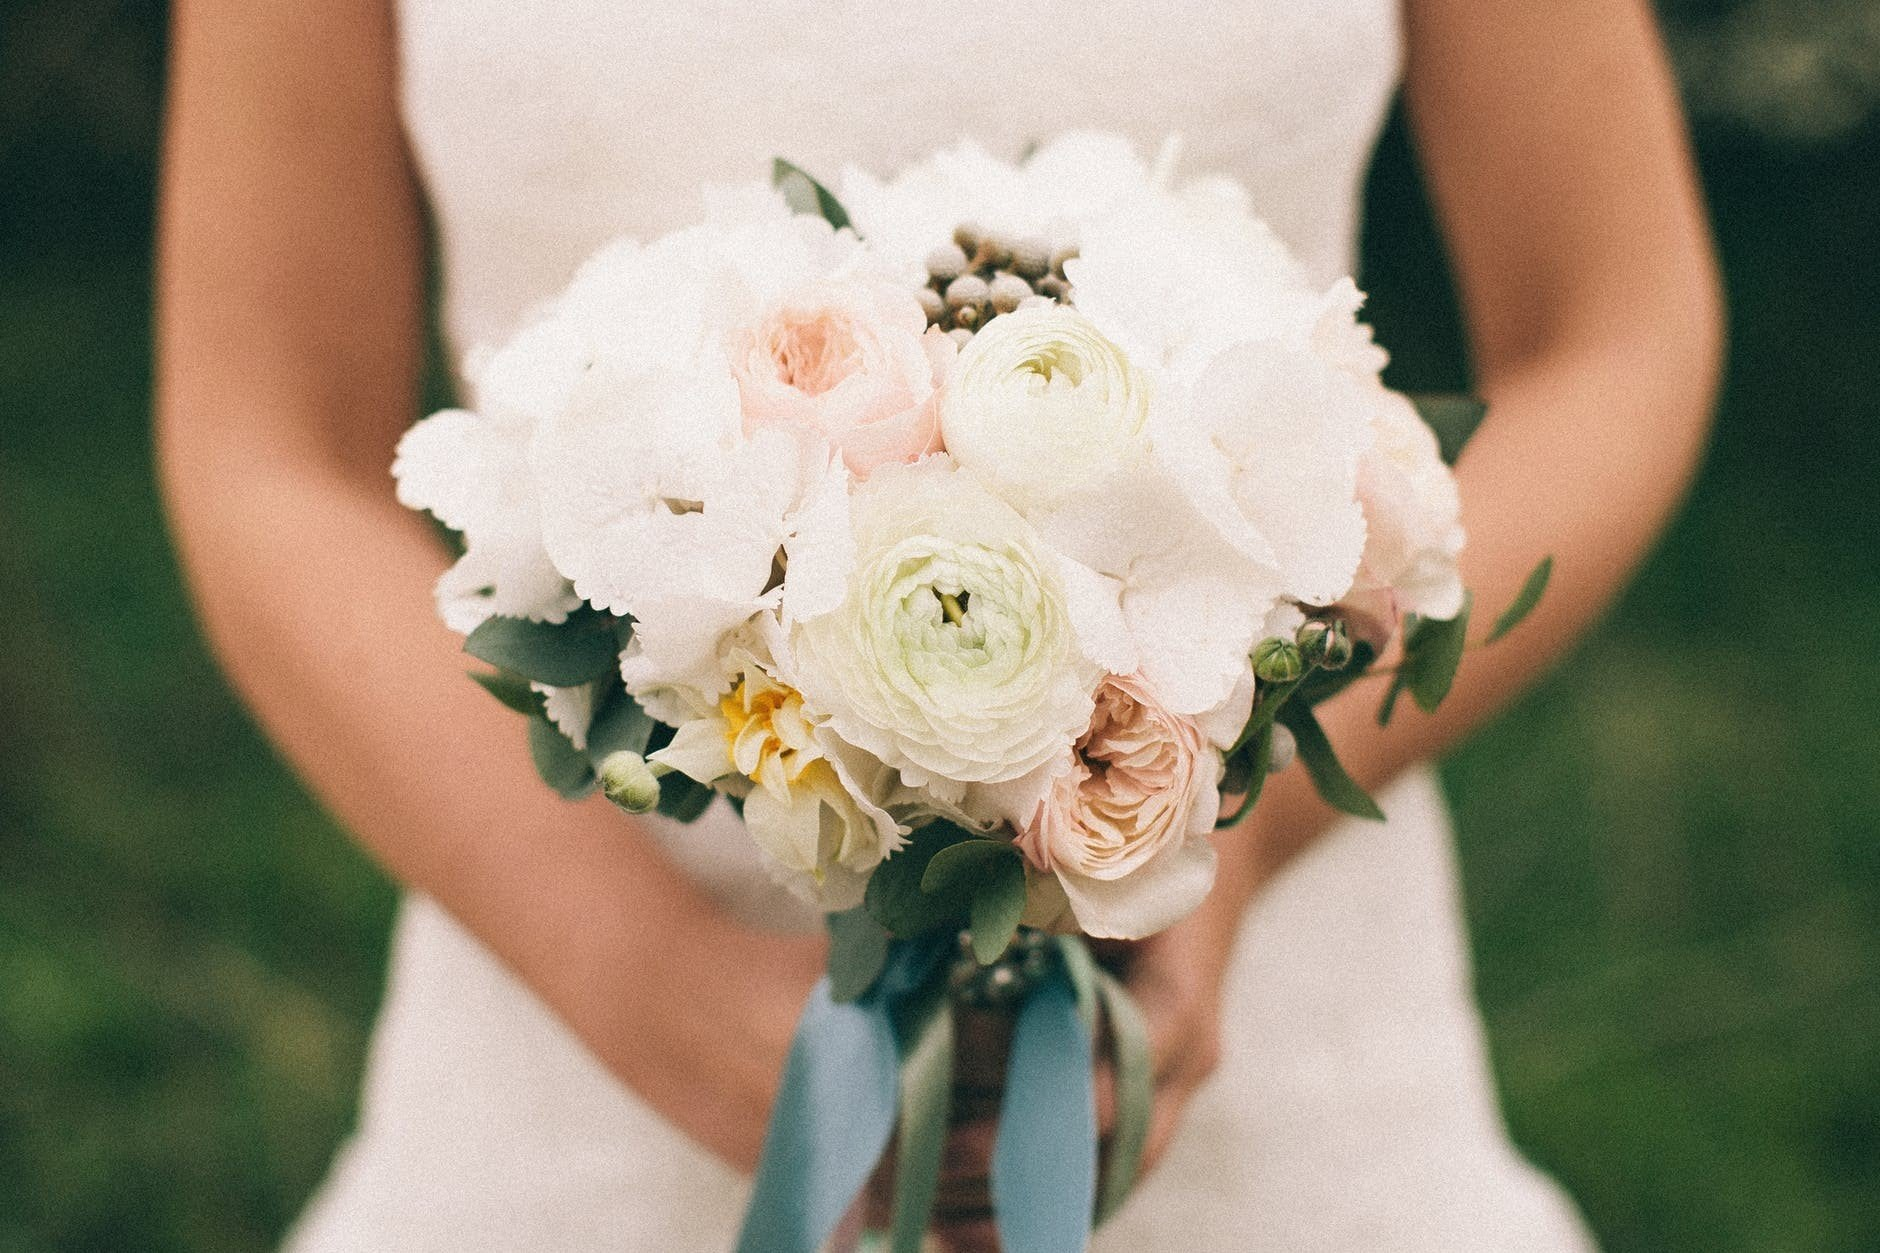 How to Choose Seasonal Blooms for Your Wedding Flowers